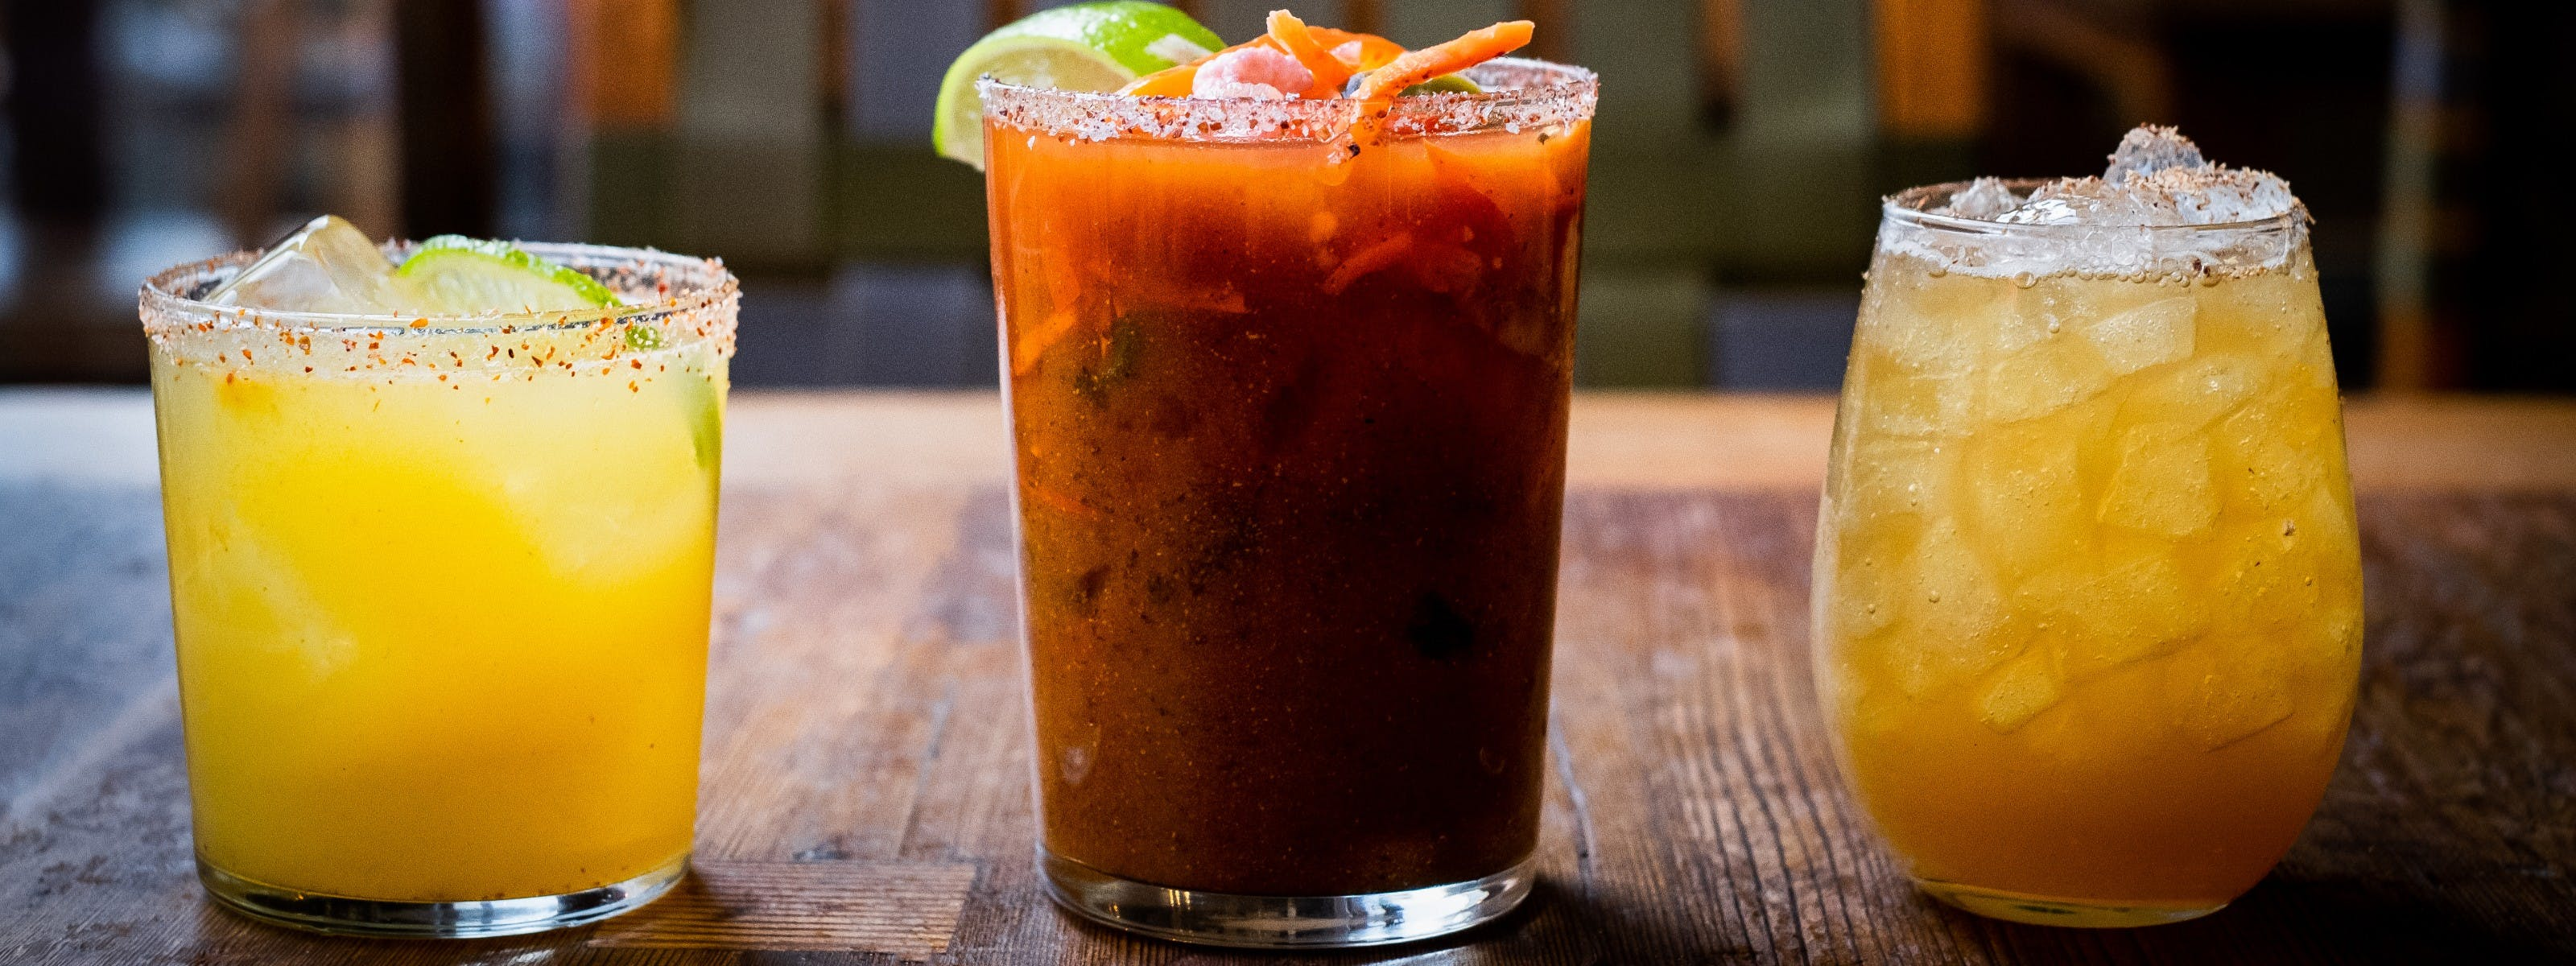 The Boston Cocktail Mixer Delivery & Takeout Guide - Boston - The Infatuation